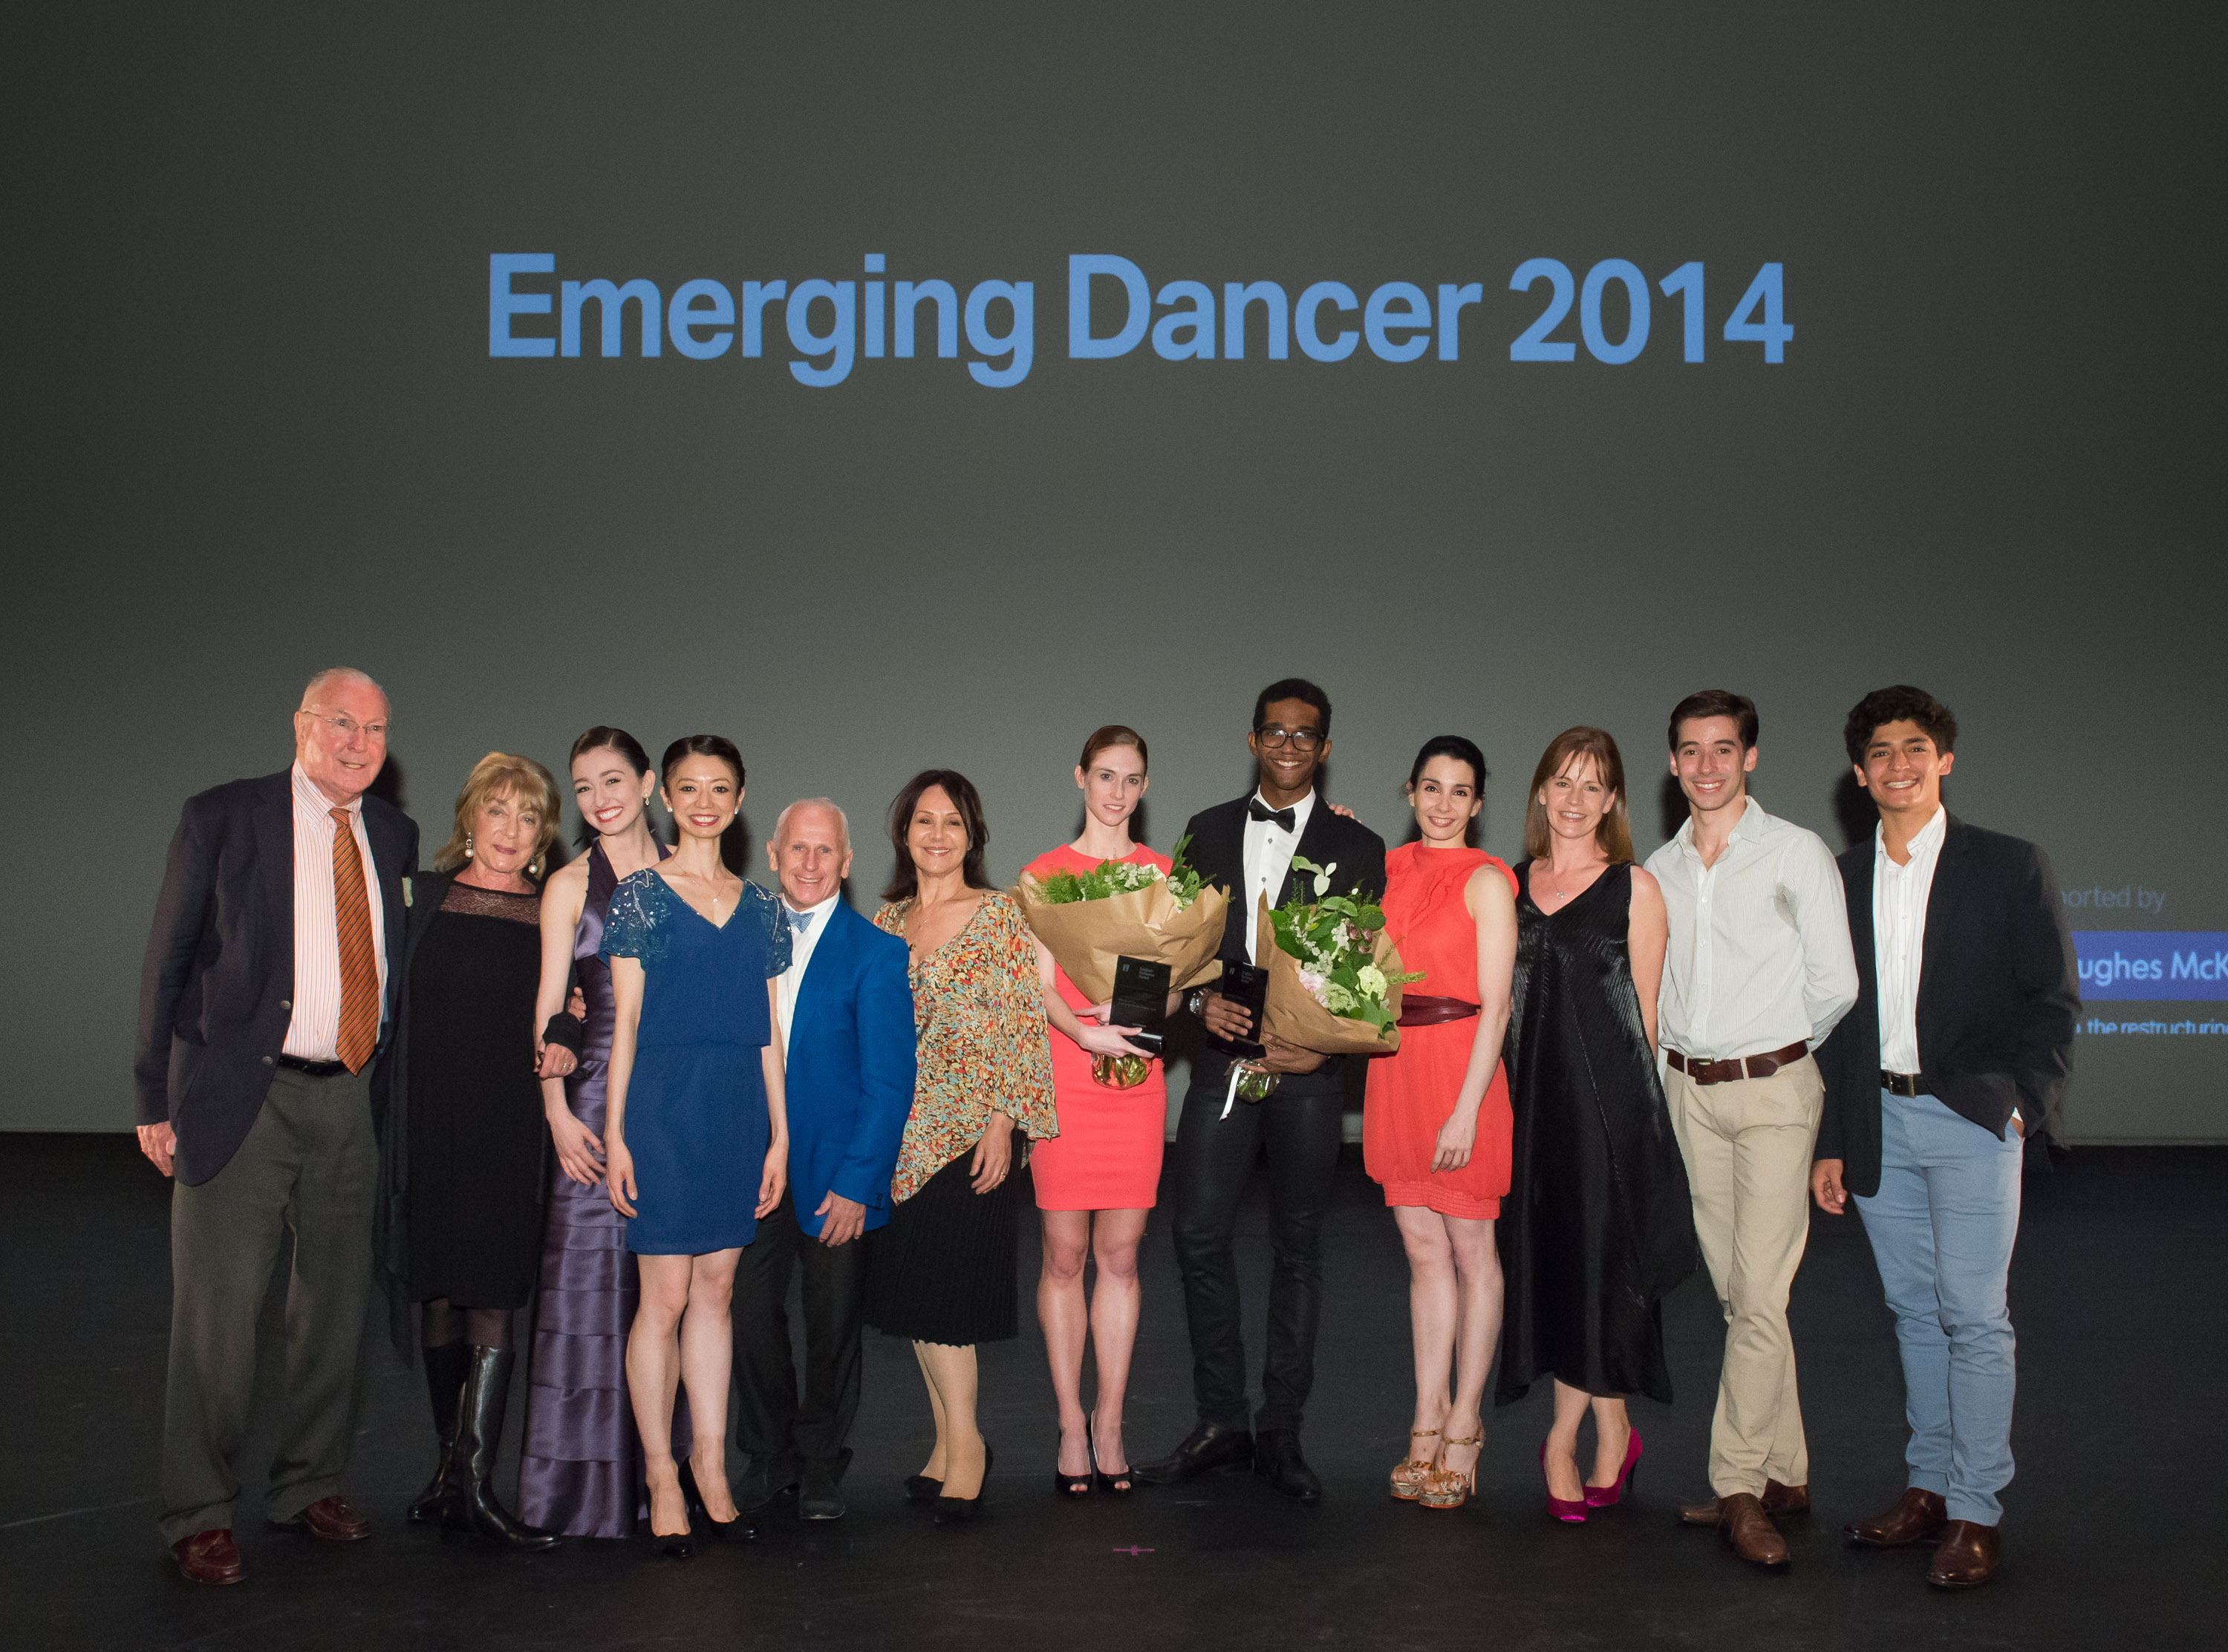 (L-R) Clement Crisp OBE, Dame Gillian Lynne DBE, Madison Keesler, Senri Kou, Wayne Sleep OBE, Arlene Phillips CBE, Alison McWhinney, Junor Souza, Tamara Rojo, Deborah Bull CBE, Vitor Menezes & Joan Sebastian Zamora at English National Ballet's Emerging Dancer 2014, at The Lyceum Theatre, London on May 19, 2014. (Photo by Arnaud Stephenson)